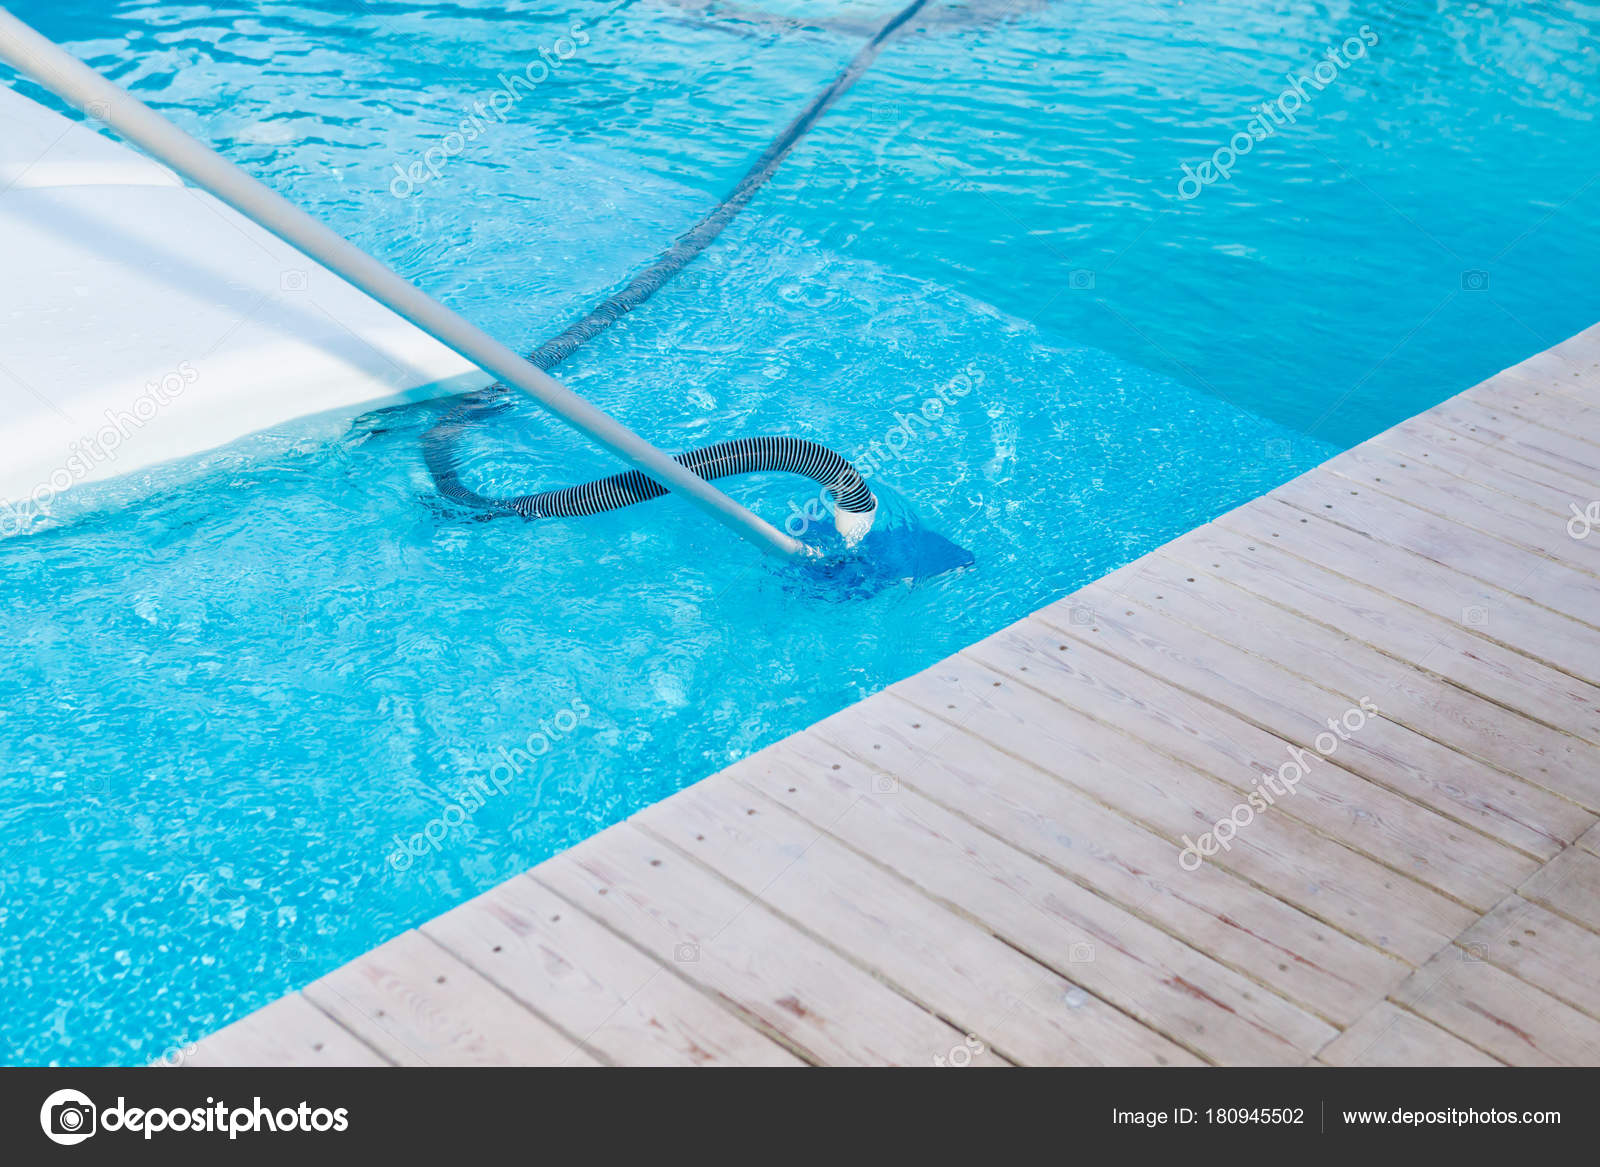 Swimming pool vacuum cleaner — Stock Photo © Nofret #180945502